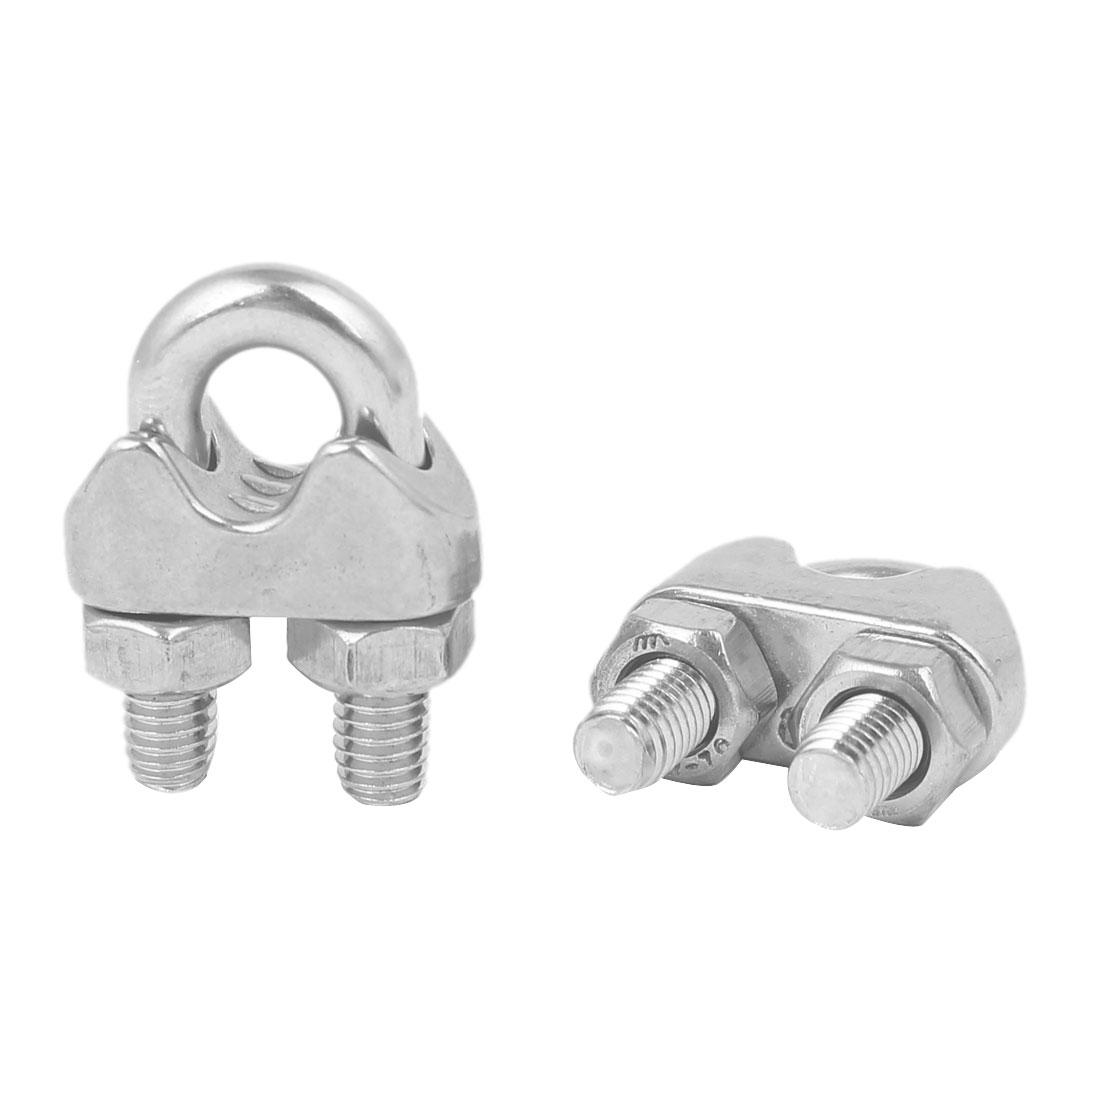 M6 304 Stainless Steel U-Shape Bolt Saddle Clamp Cable Wire Rope Clip 2PCS